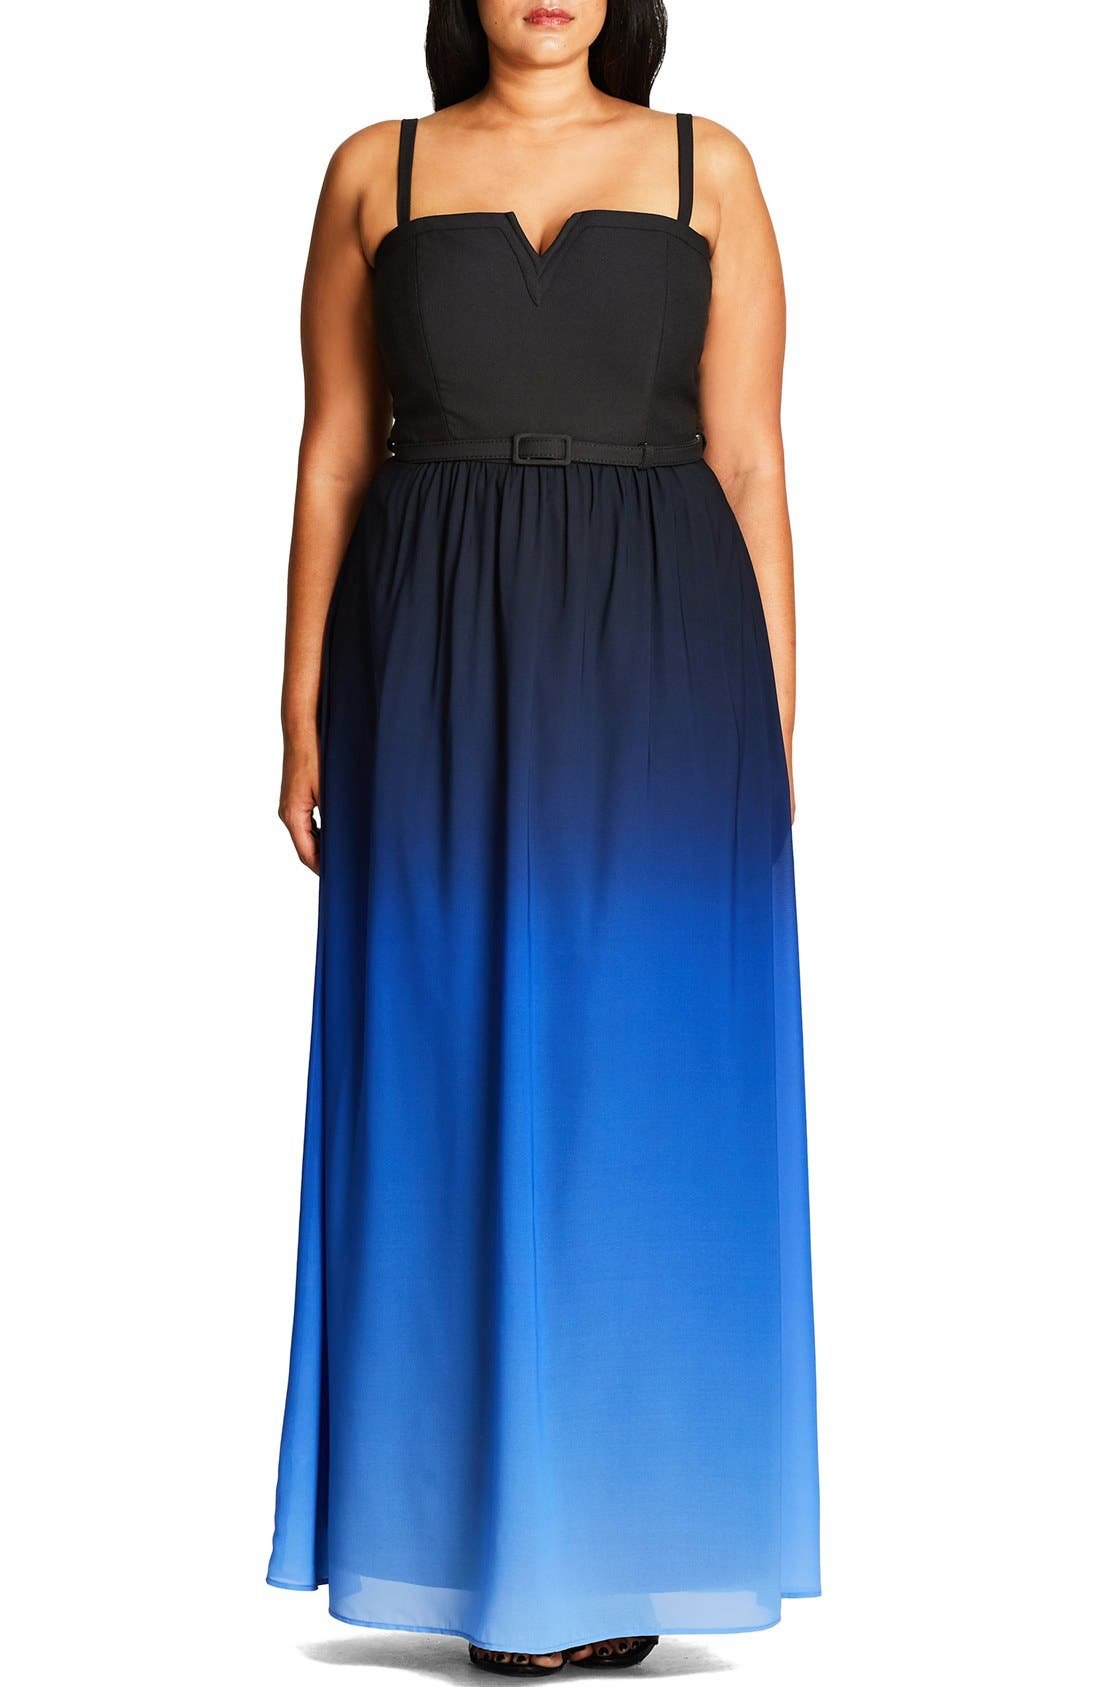 CITY CHIC 'Ombré Queen' Notch Neck Maxi Dress